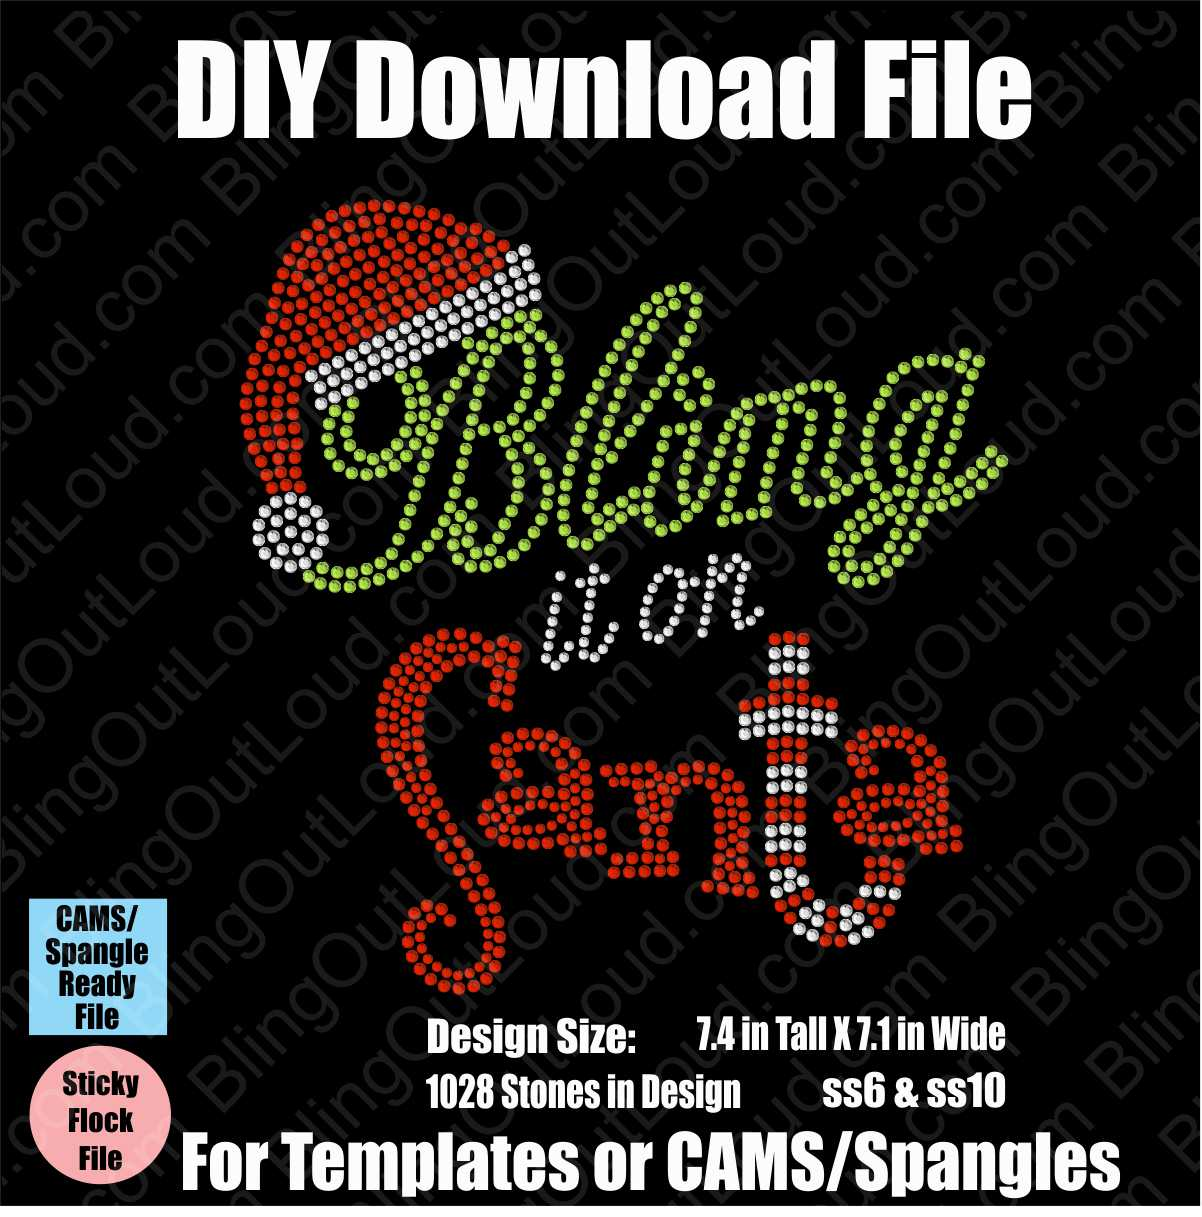 Bling It On Santa Christmas Download File - CAMS/ProSpangle/Templates